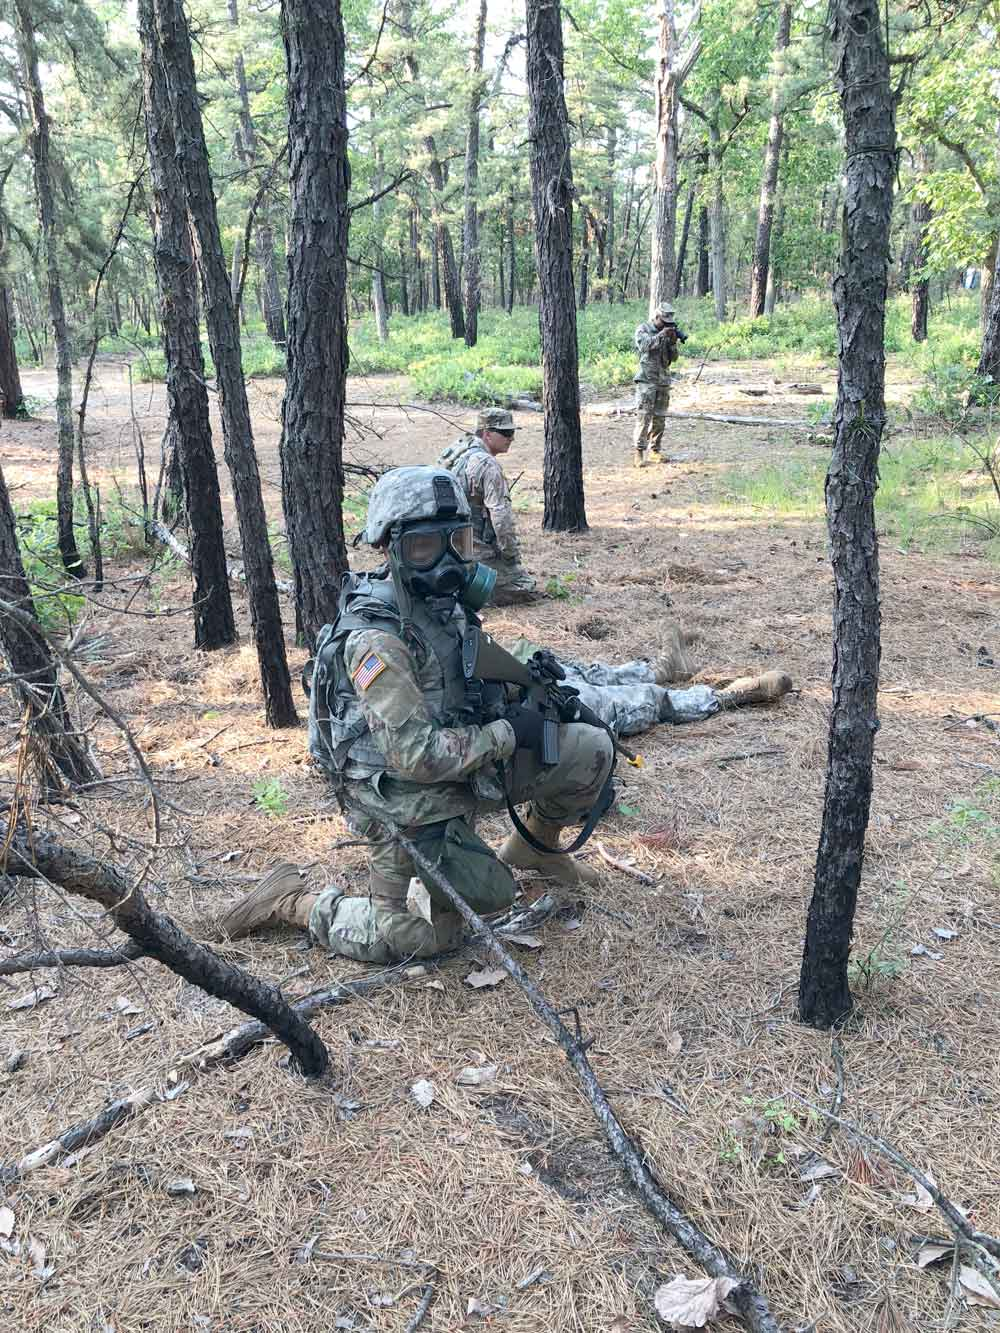 2LT Katty Vellida waits for an all-clear while rehearsing nuclear, biological, chemical attack procedures during the 350th Financial Management Support Detachment's mobilization exercise.